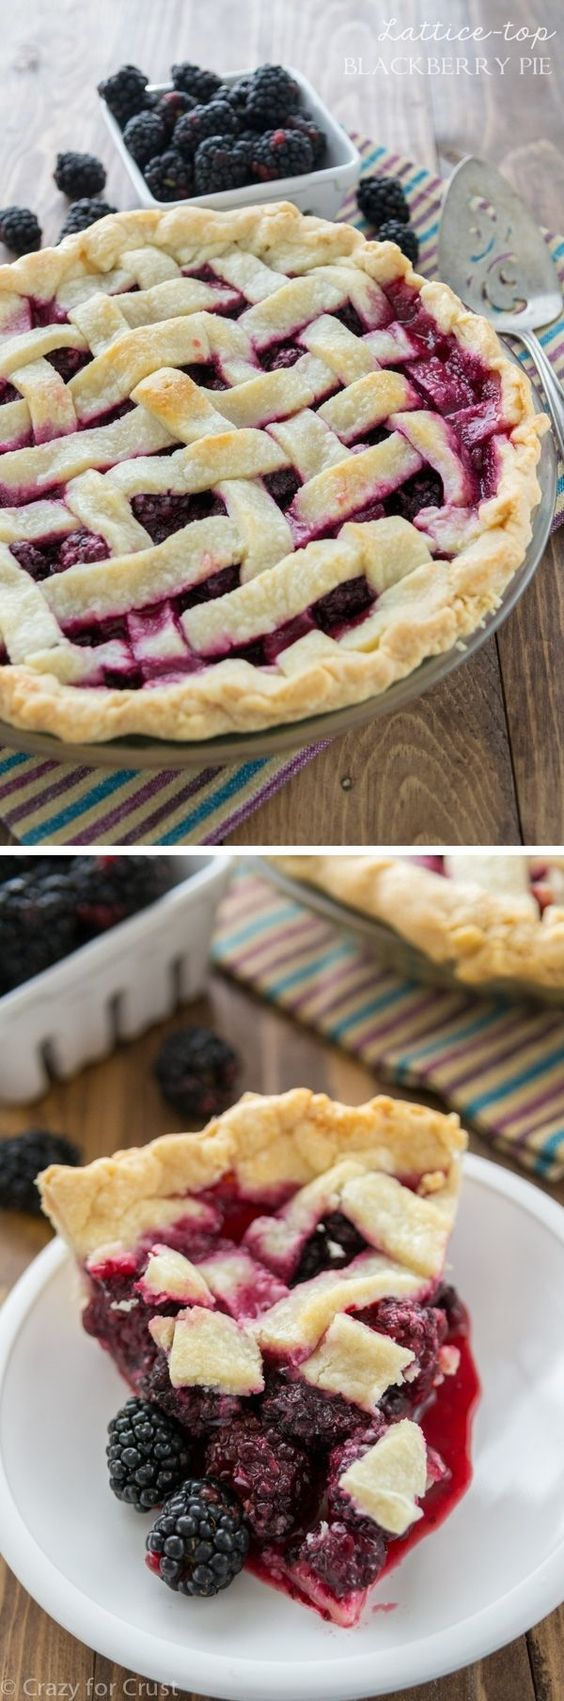 how to make pie top crust